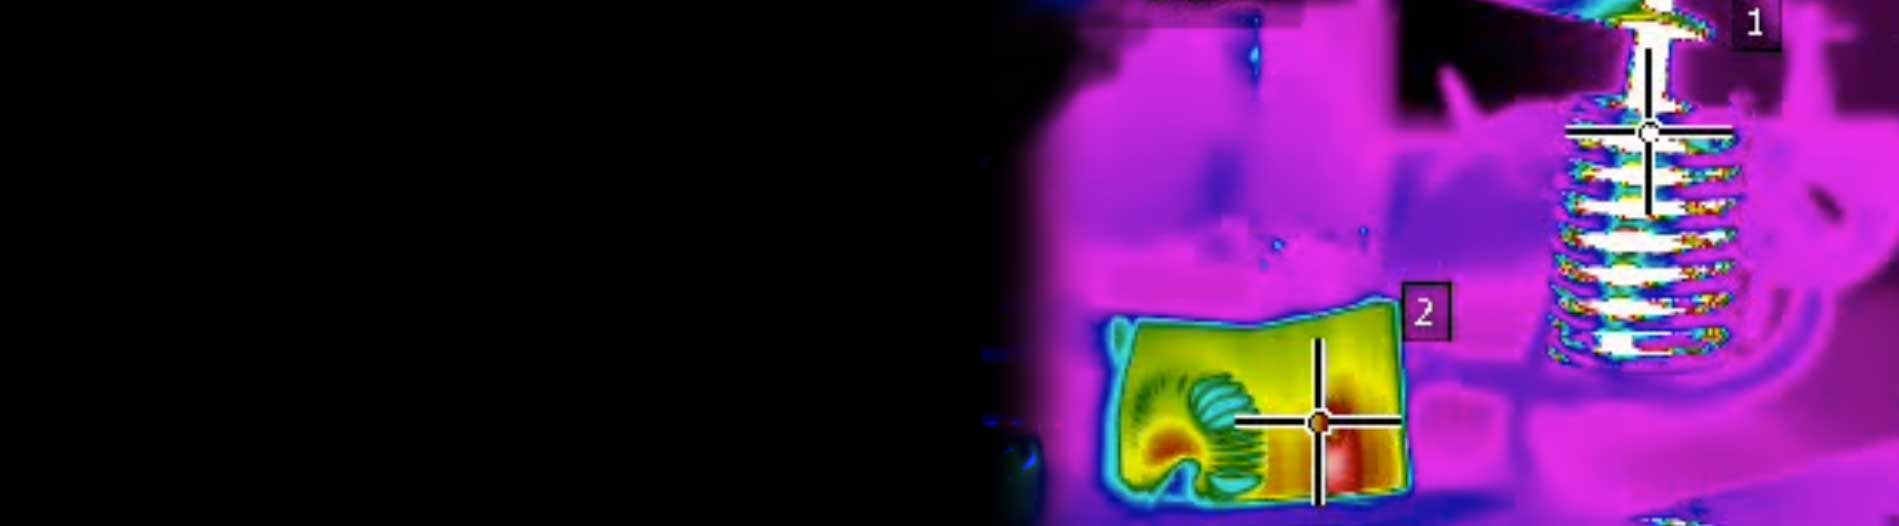 FLIR Thermal Image